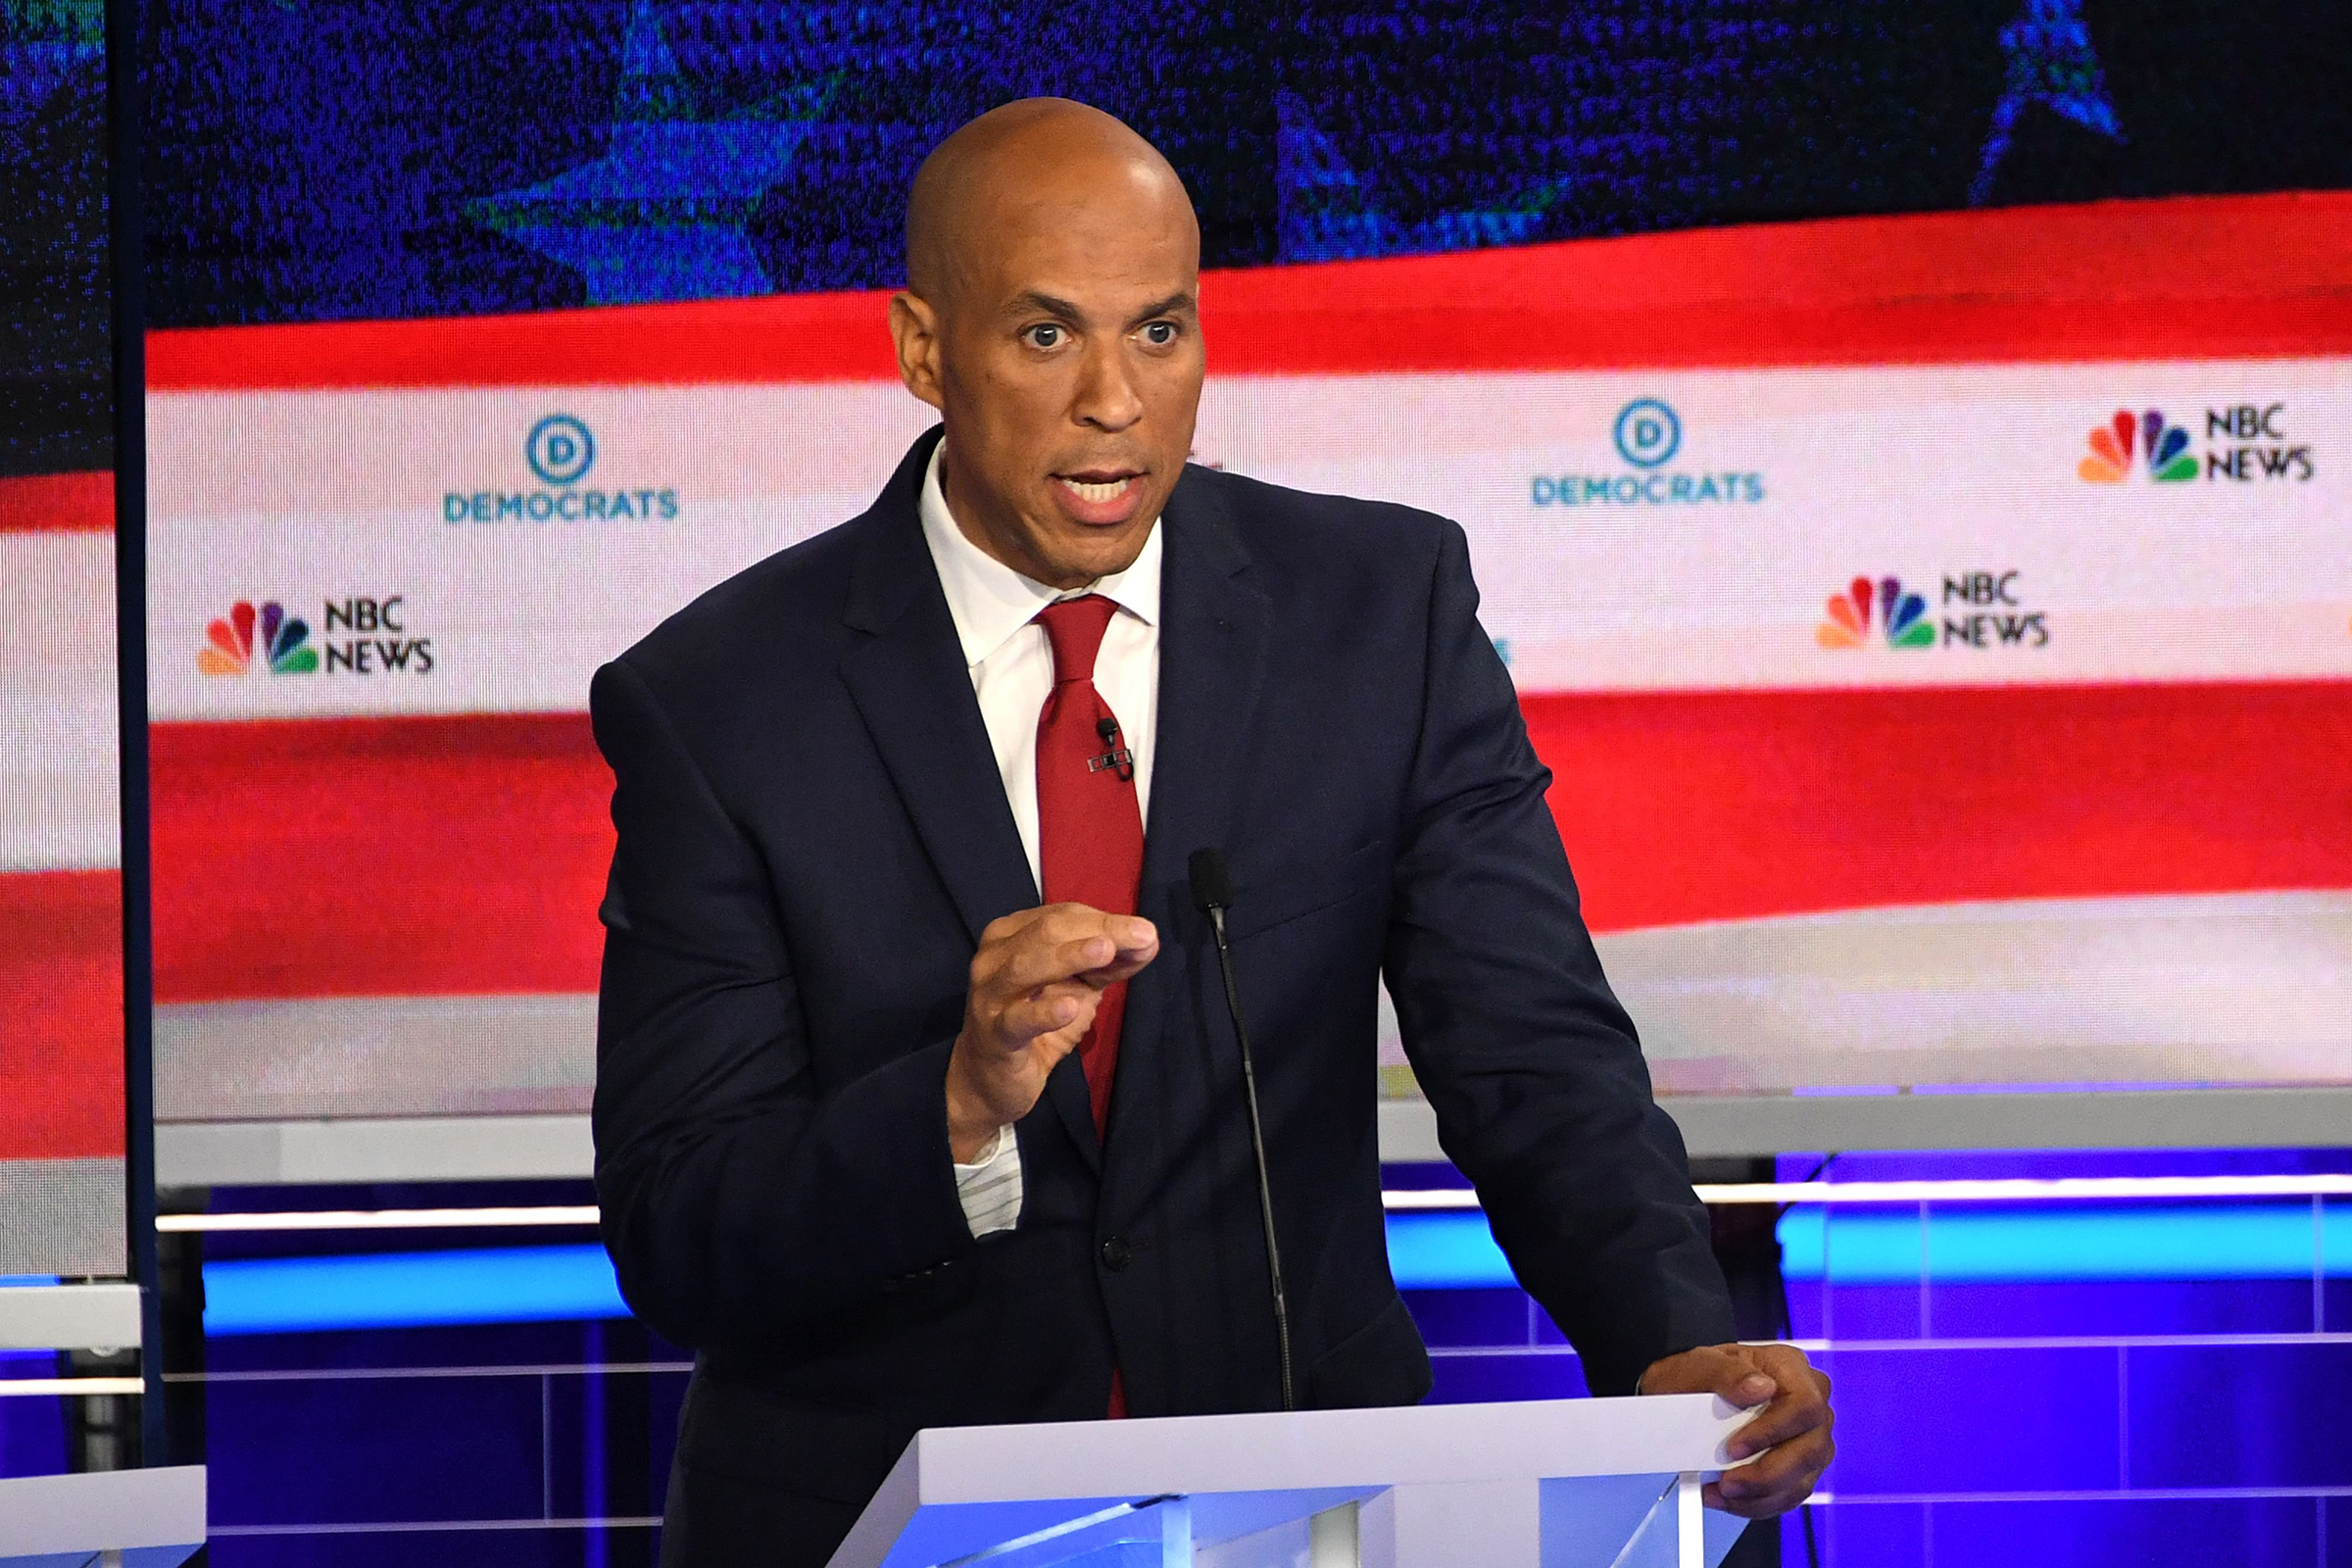 Democratic presidential hopeful US Senator from New Jersey Cory Booker participates in the first Democratic primary debate of the 2020 presidential campaign season hosted by NBC News at the Adrienne Arsht Center for the Performing Arts in Miami, Florida, June 26, 2019.